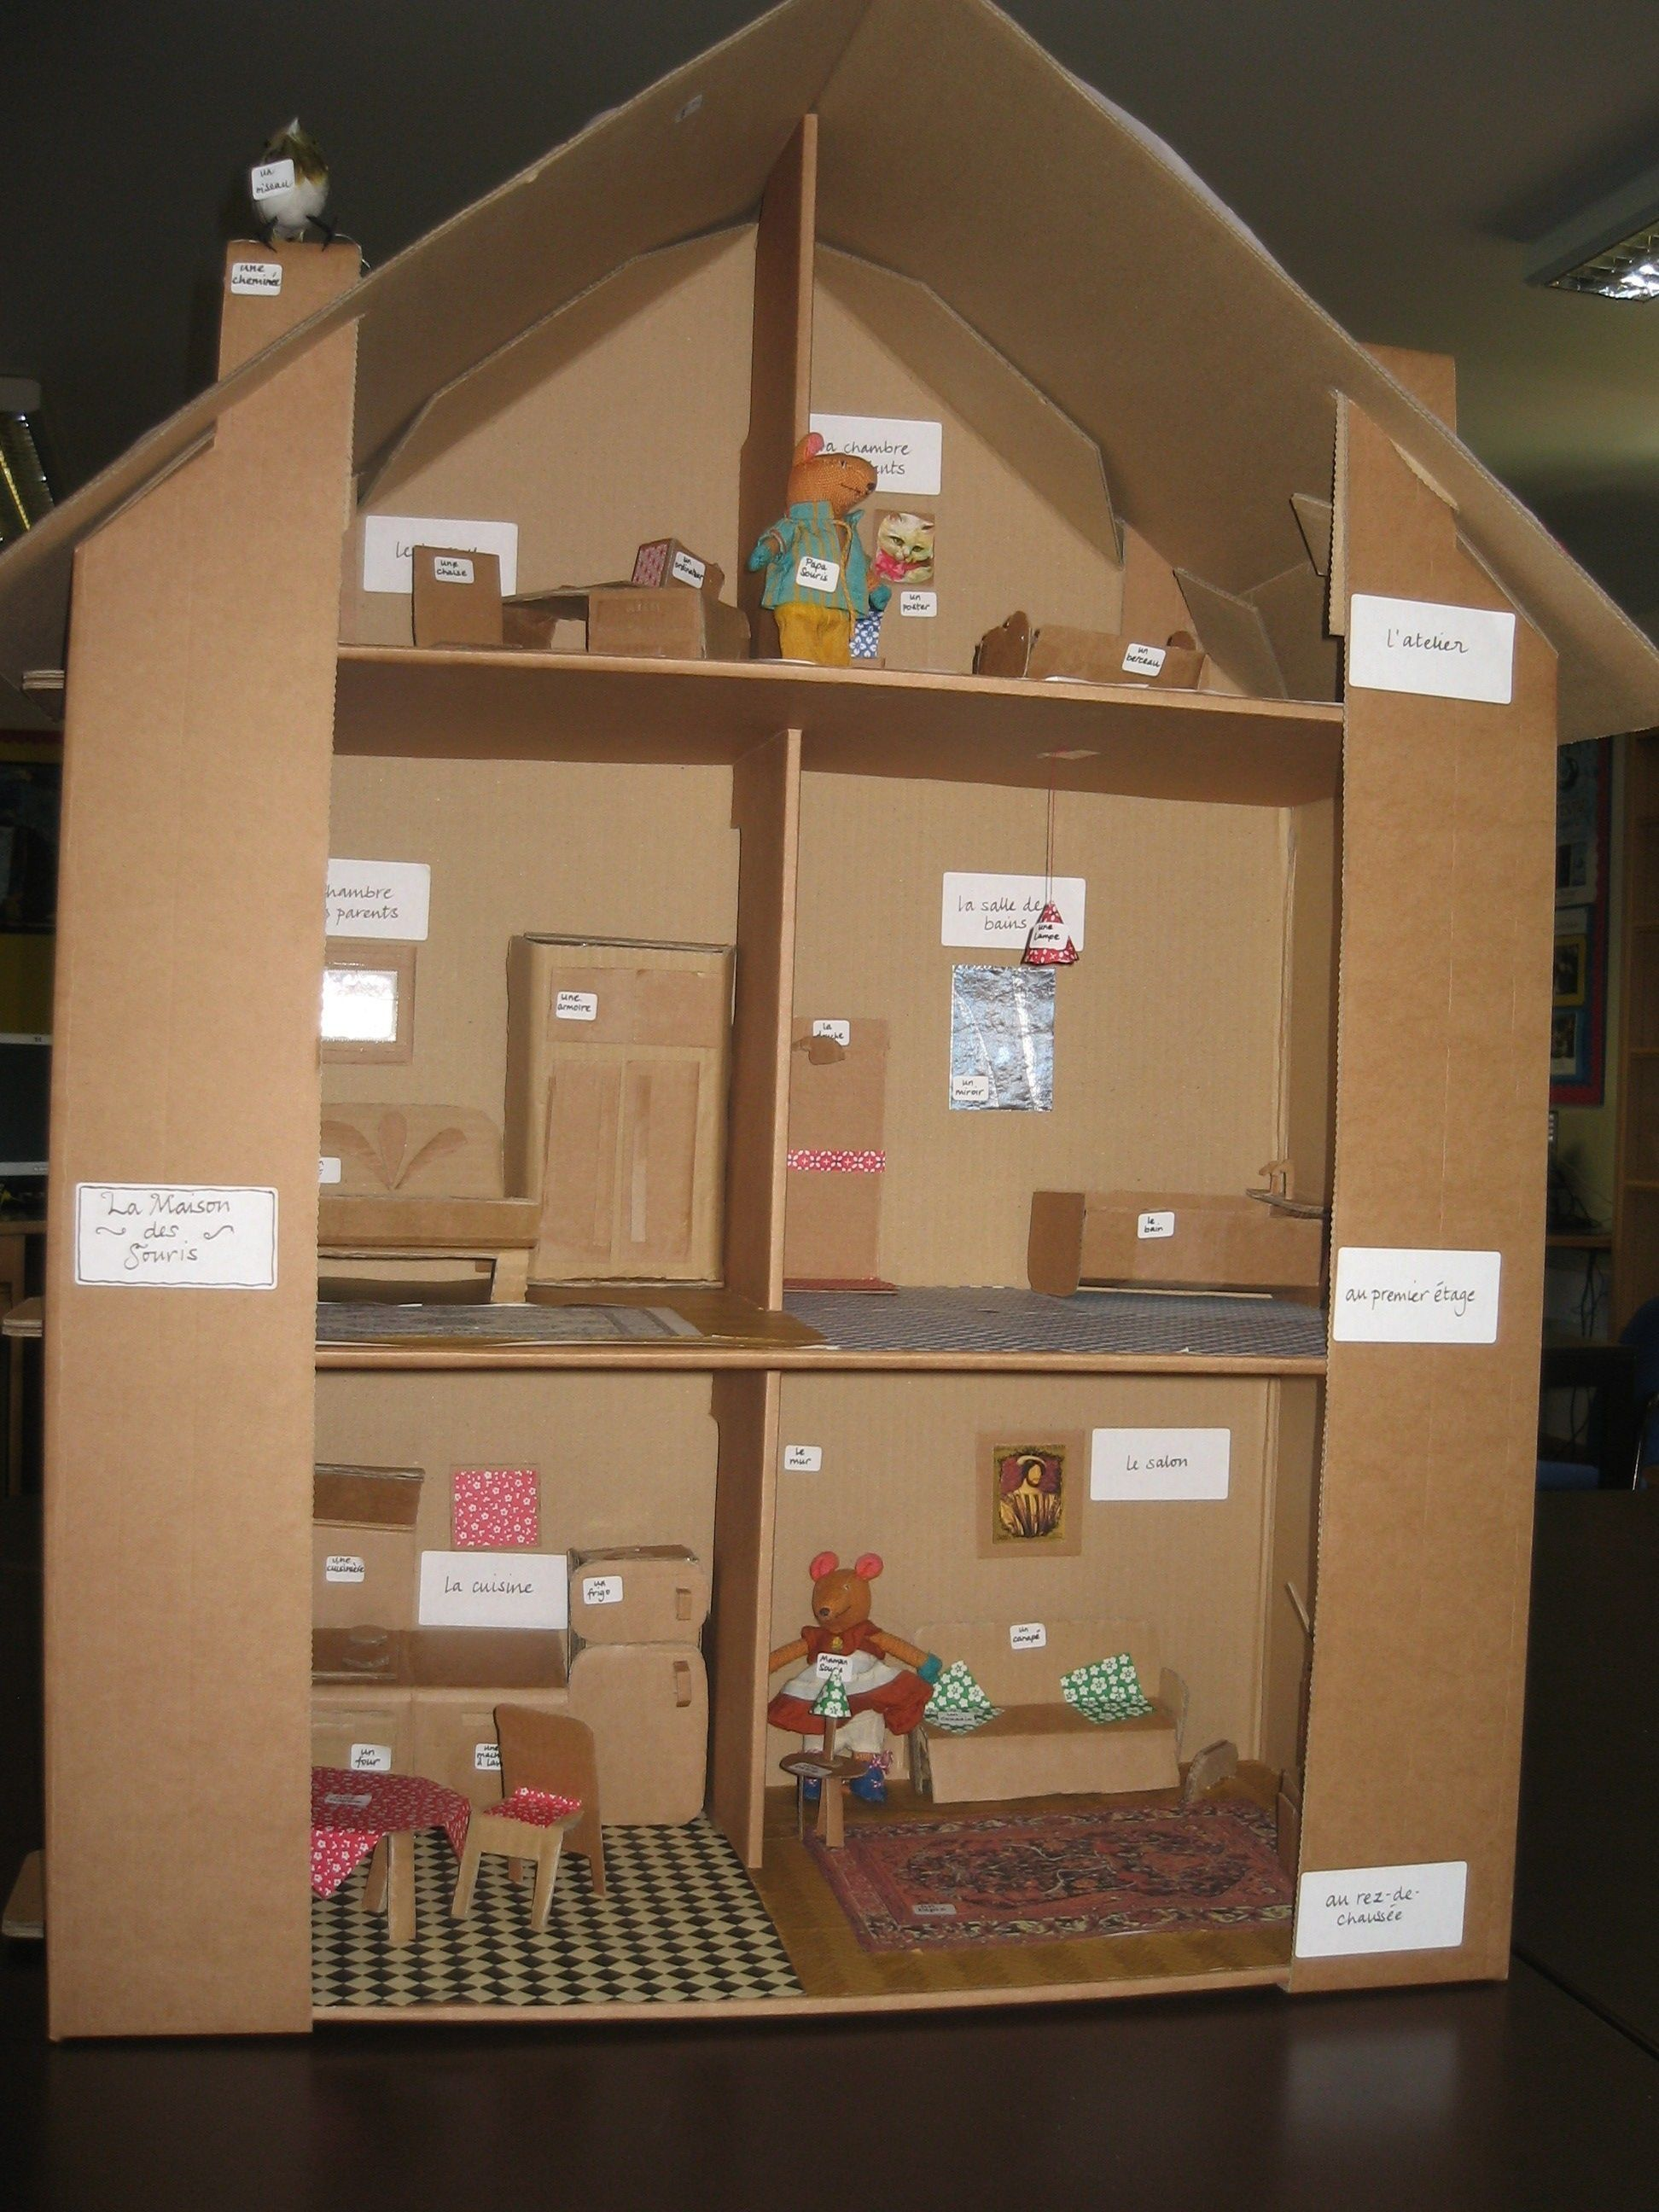 cardboard house labelled in French education